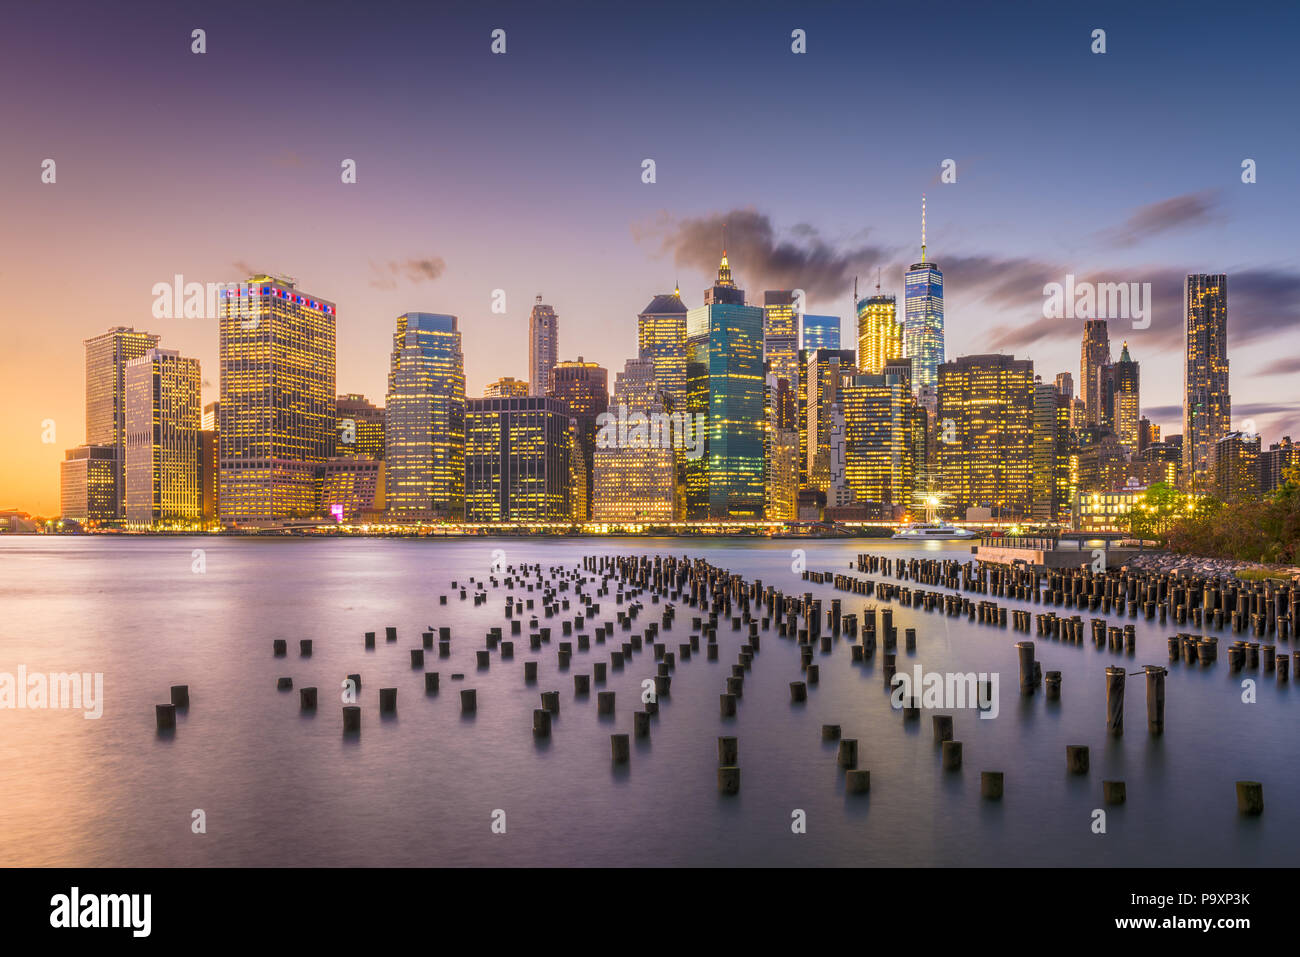 New York, New York, USA downtown skyline at dusk on the East River. - Stock Image